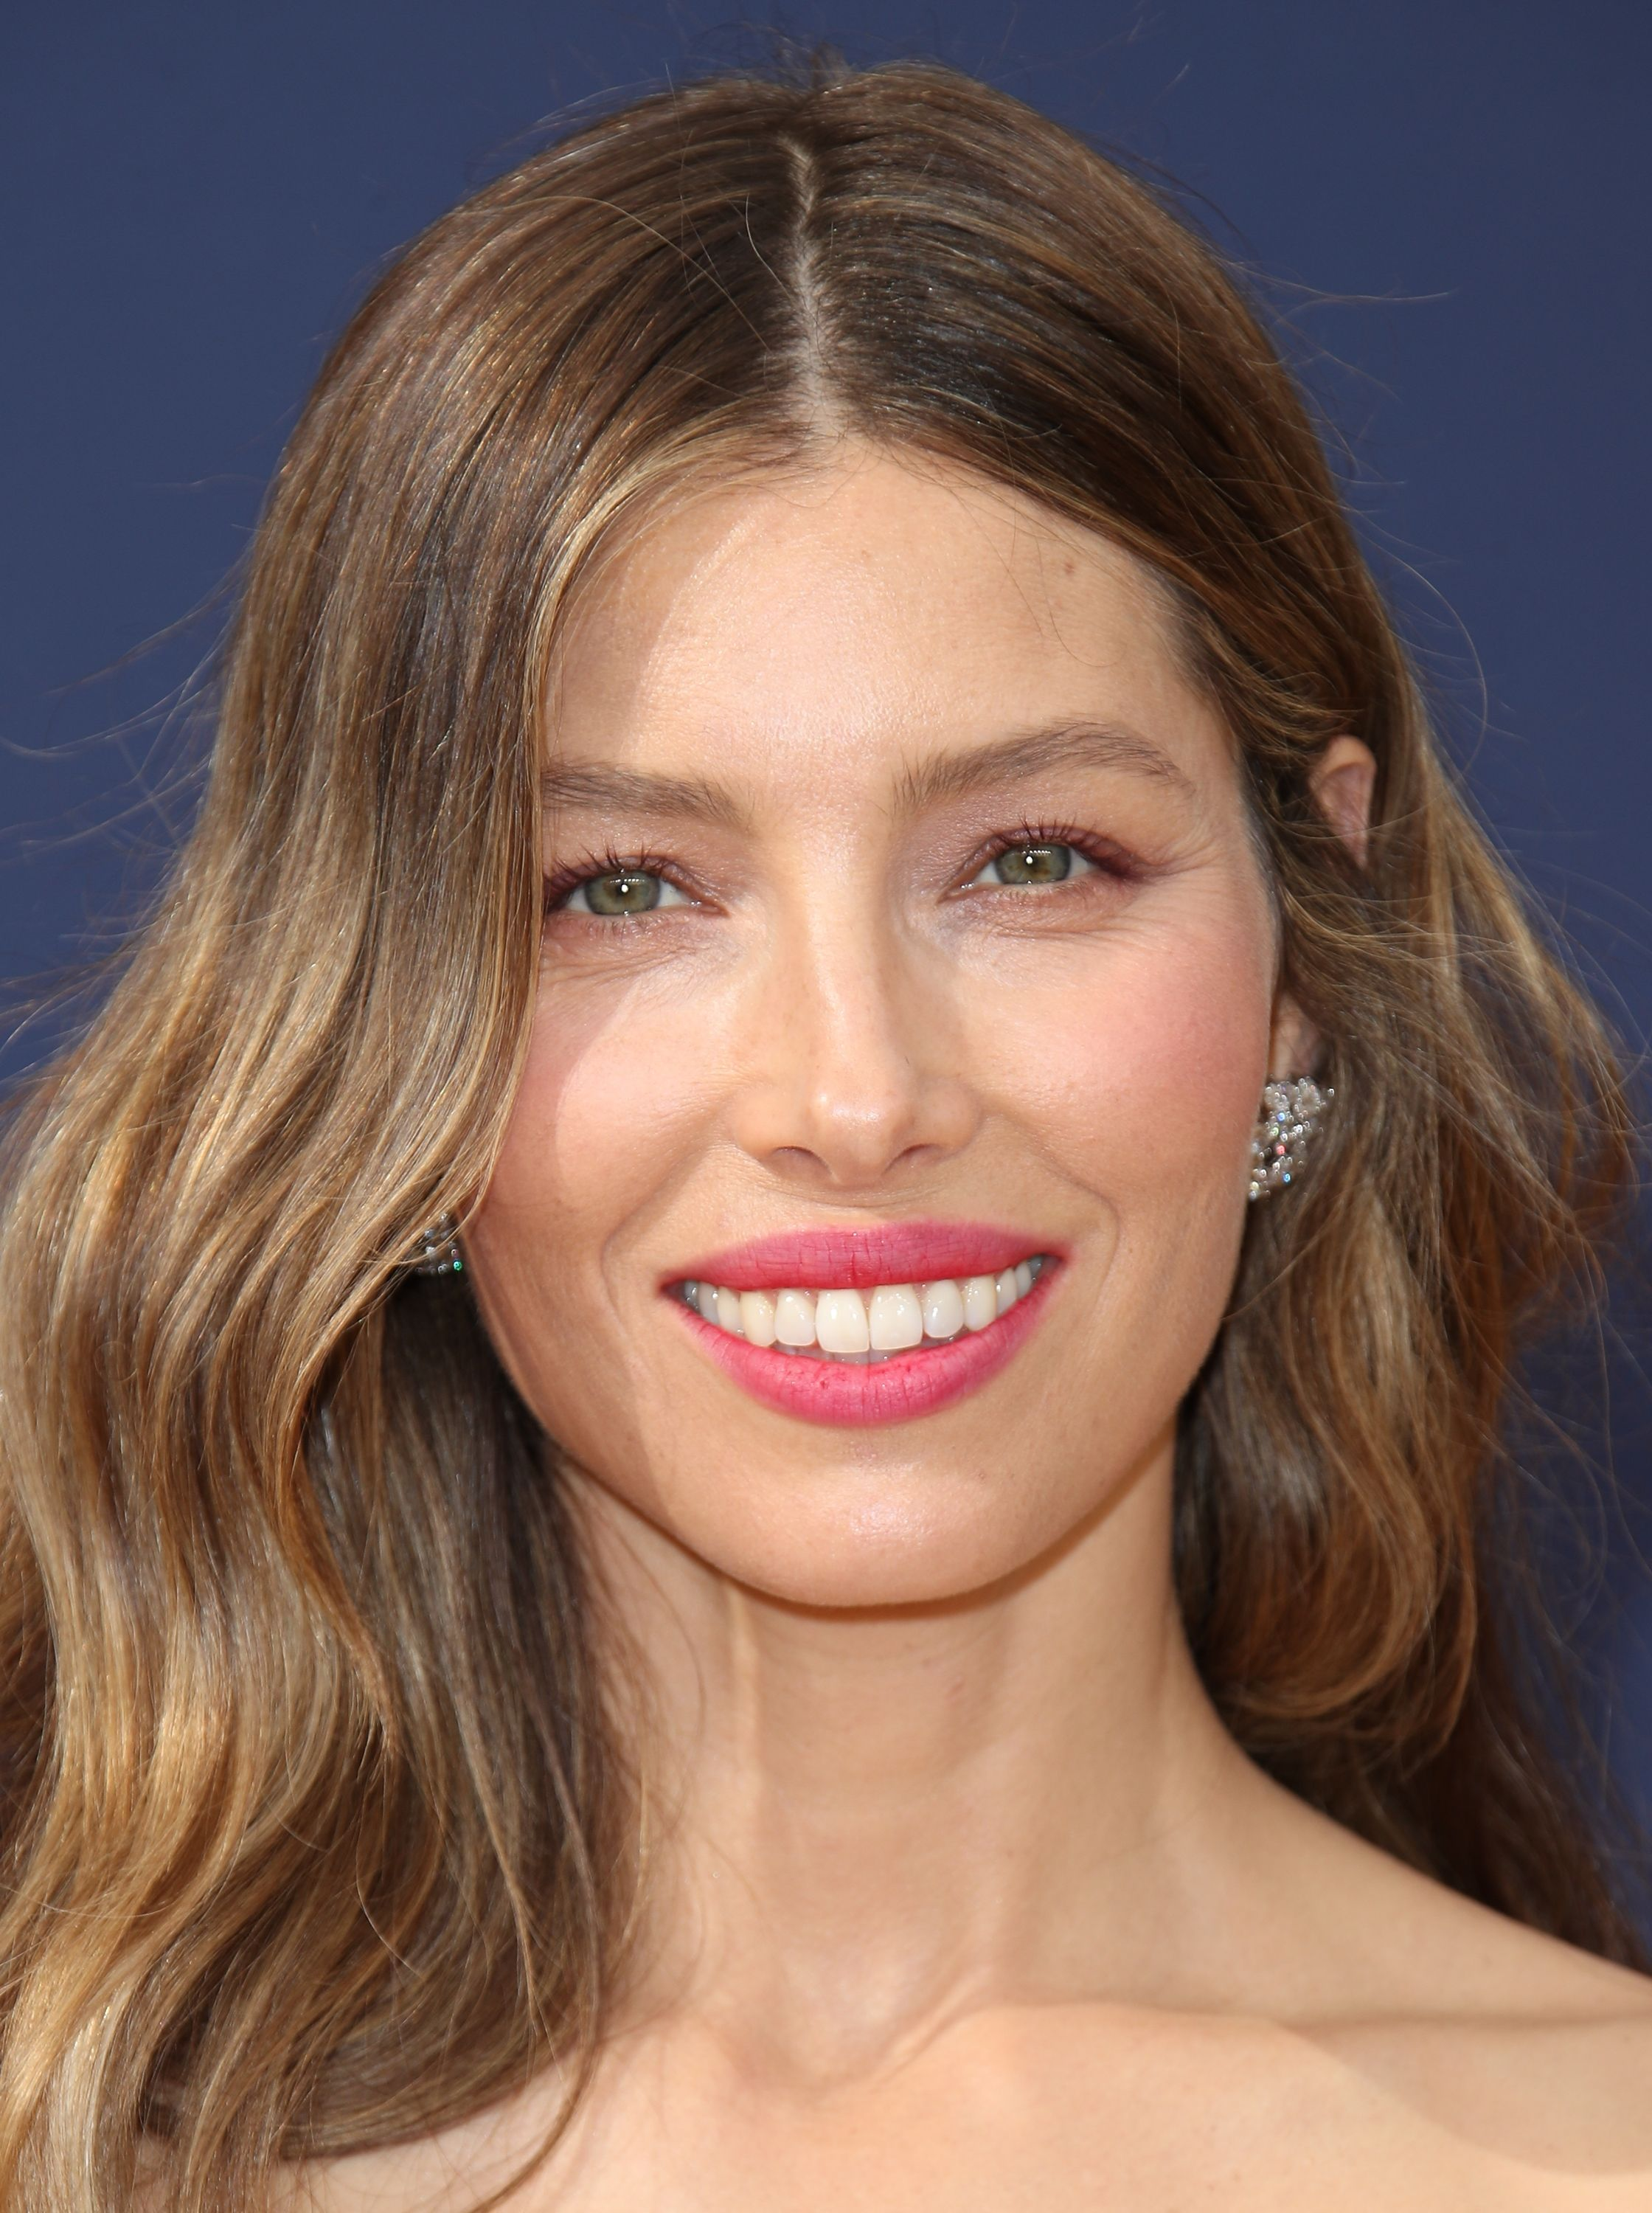 Jessica Biel Just Posted A Gorgeous No-Makeup Selfie To Promote Self-Love